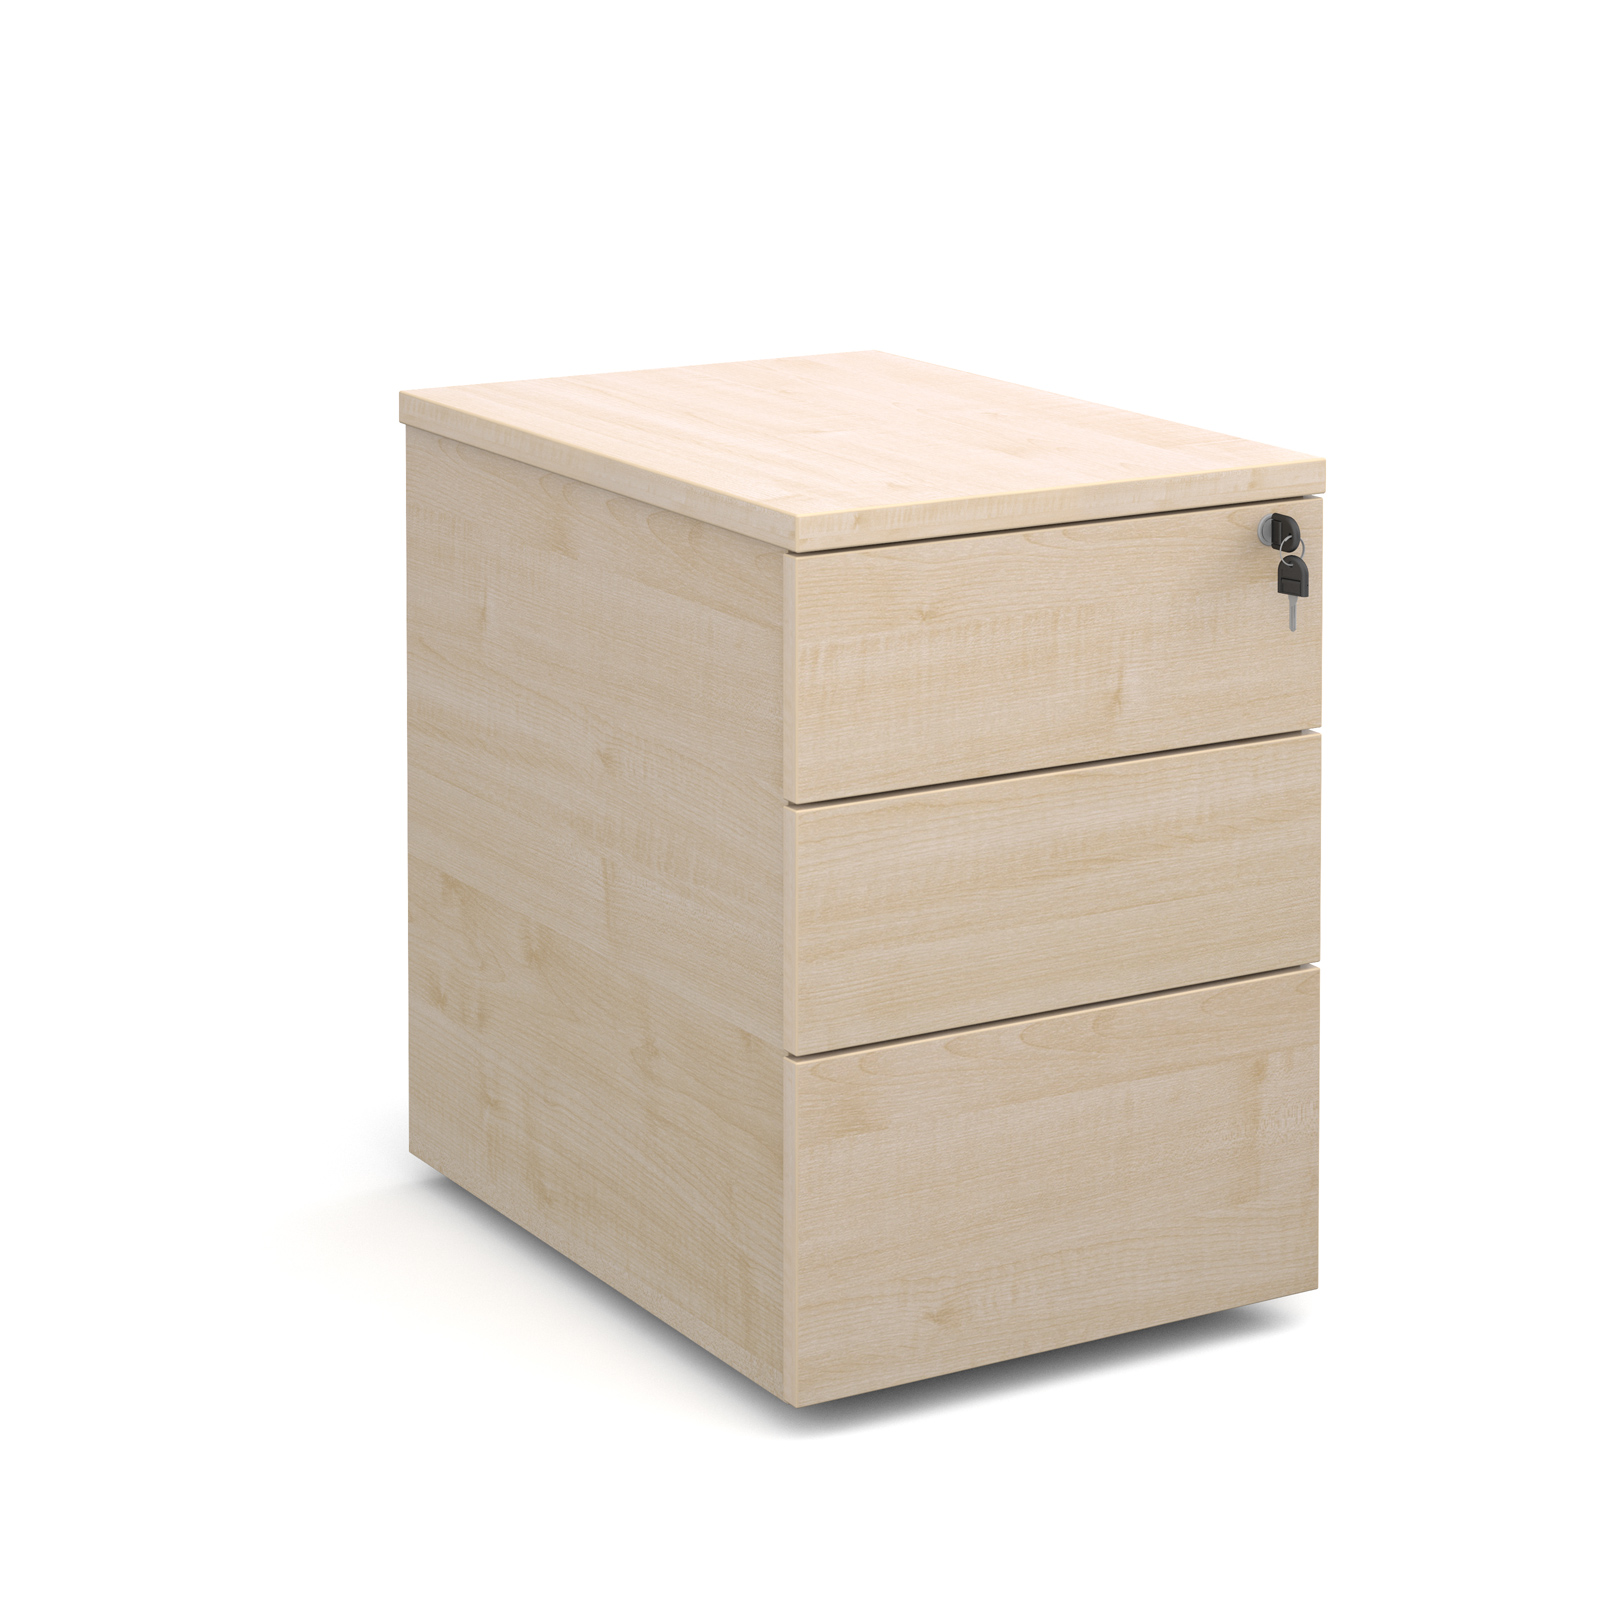 Deluxe 3 drawer mobile pedestal 600mm deep - maple